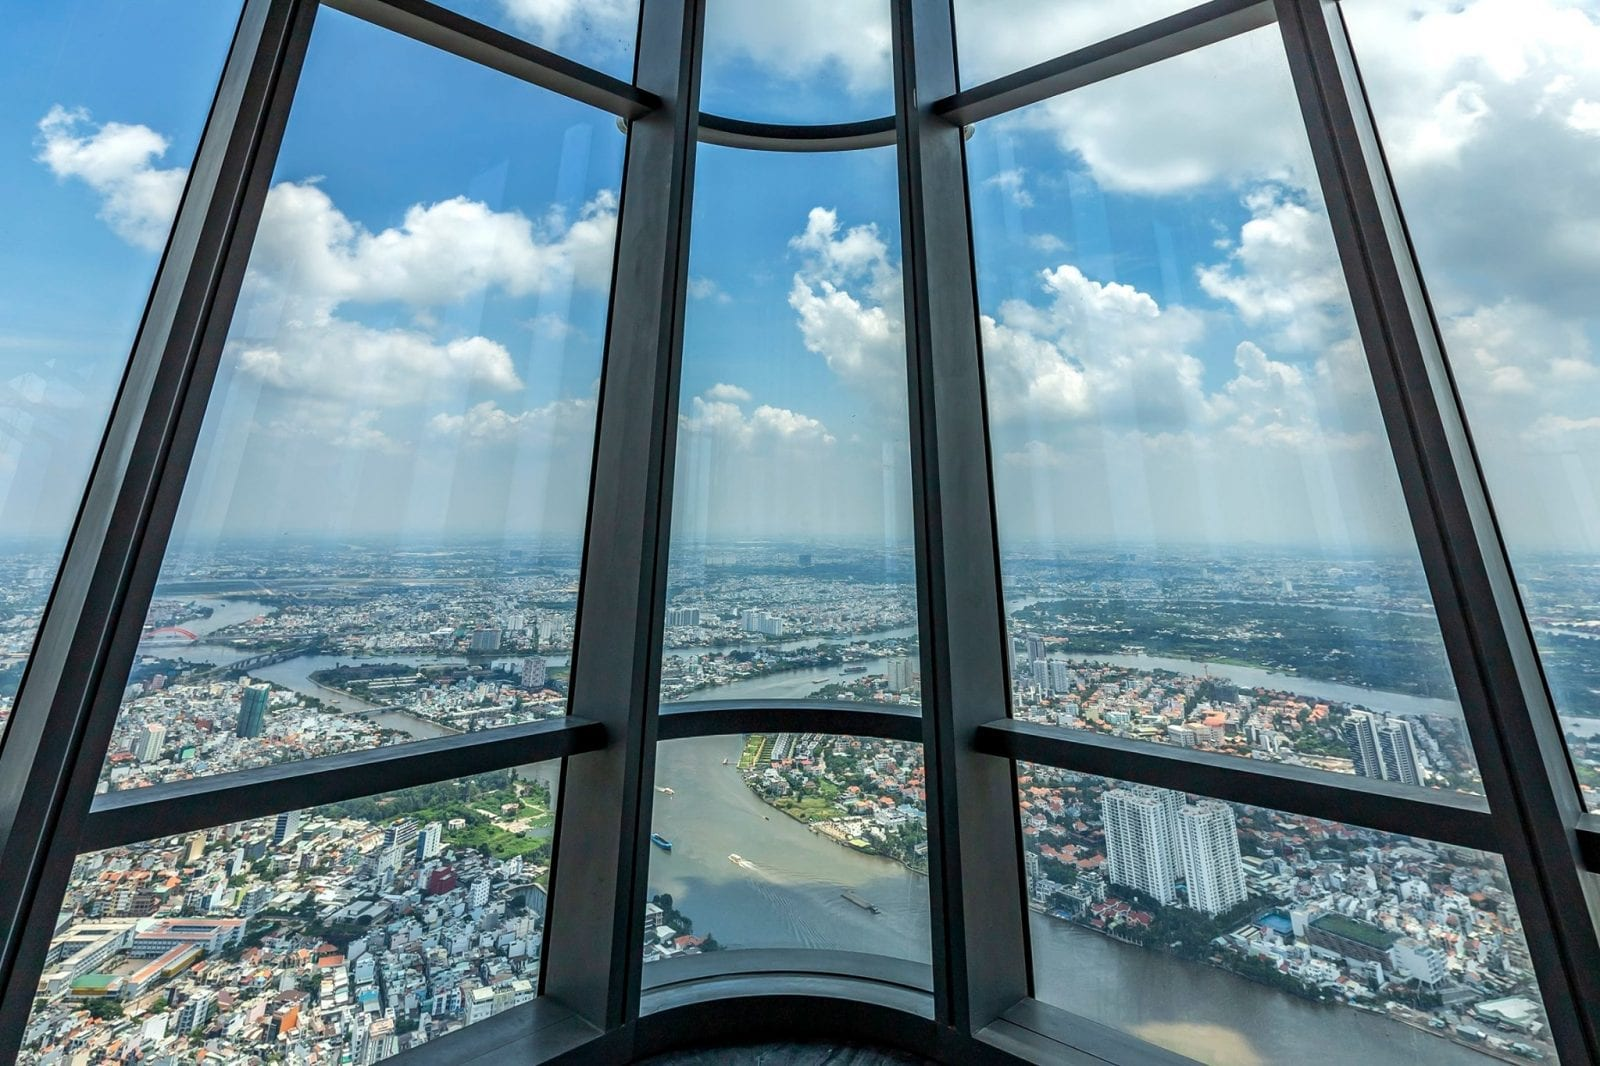 Image of the view from thr Observation Deck at Landmark 81 SkyView in HCMC, Vietnam